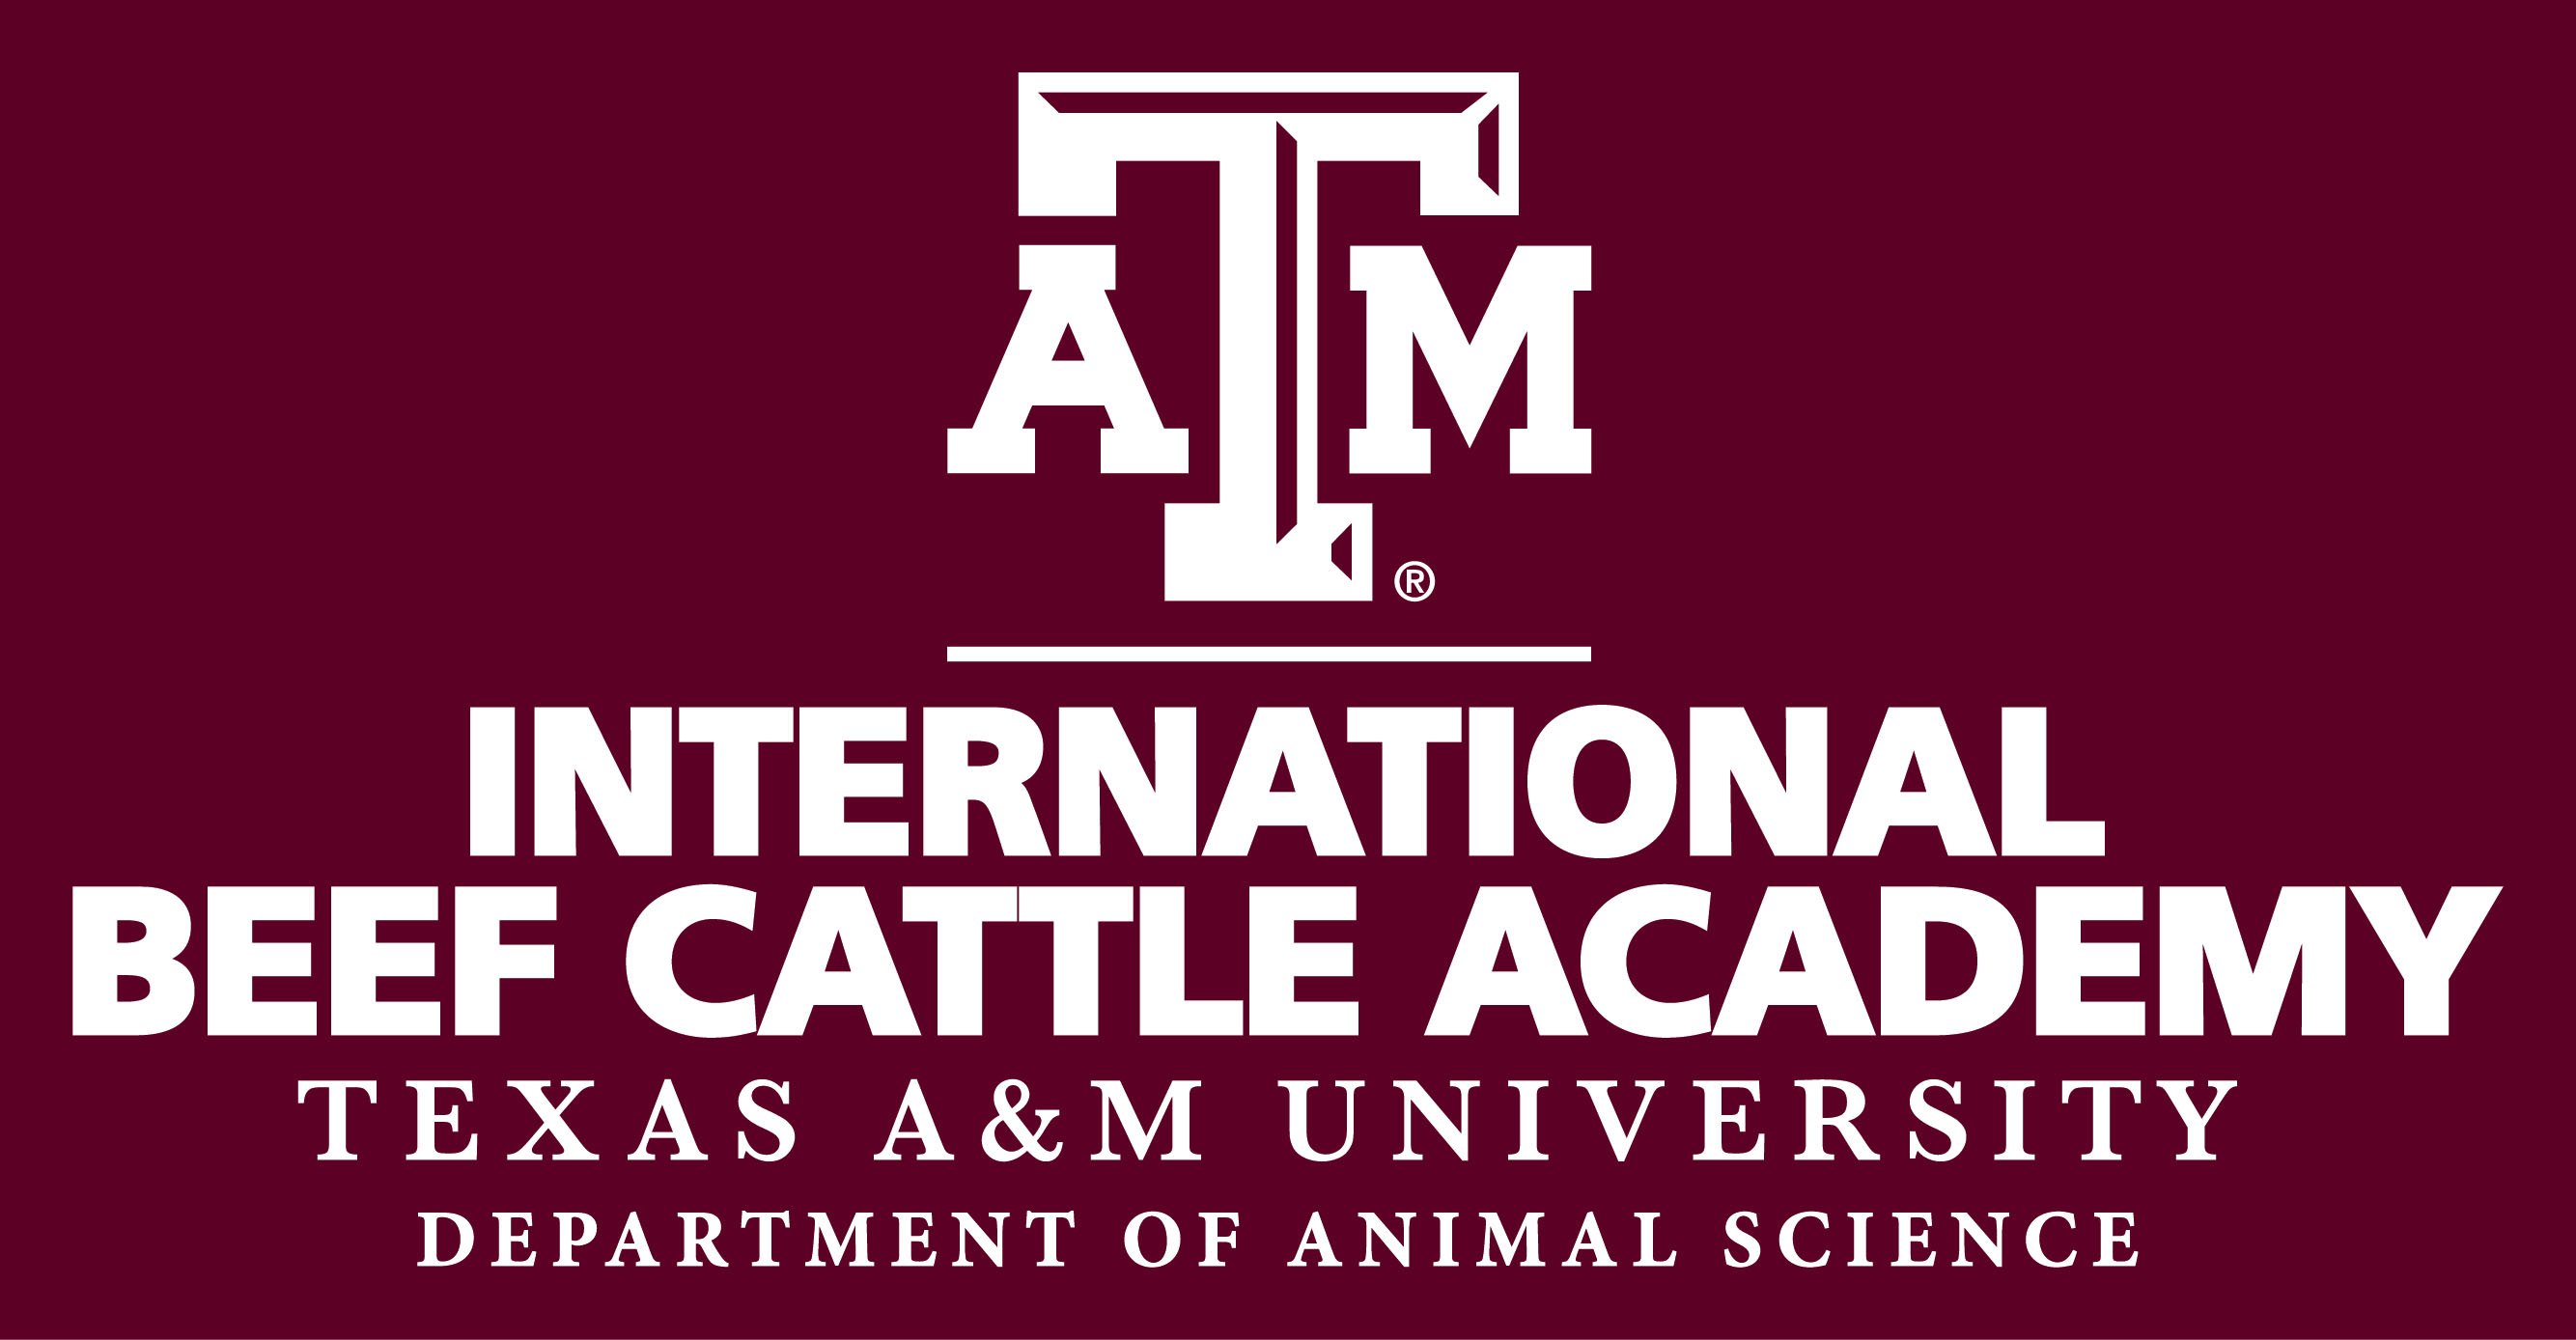 International Beef Cattle Academy